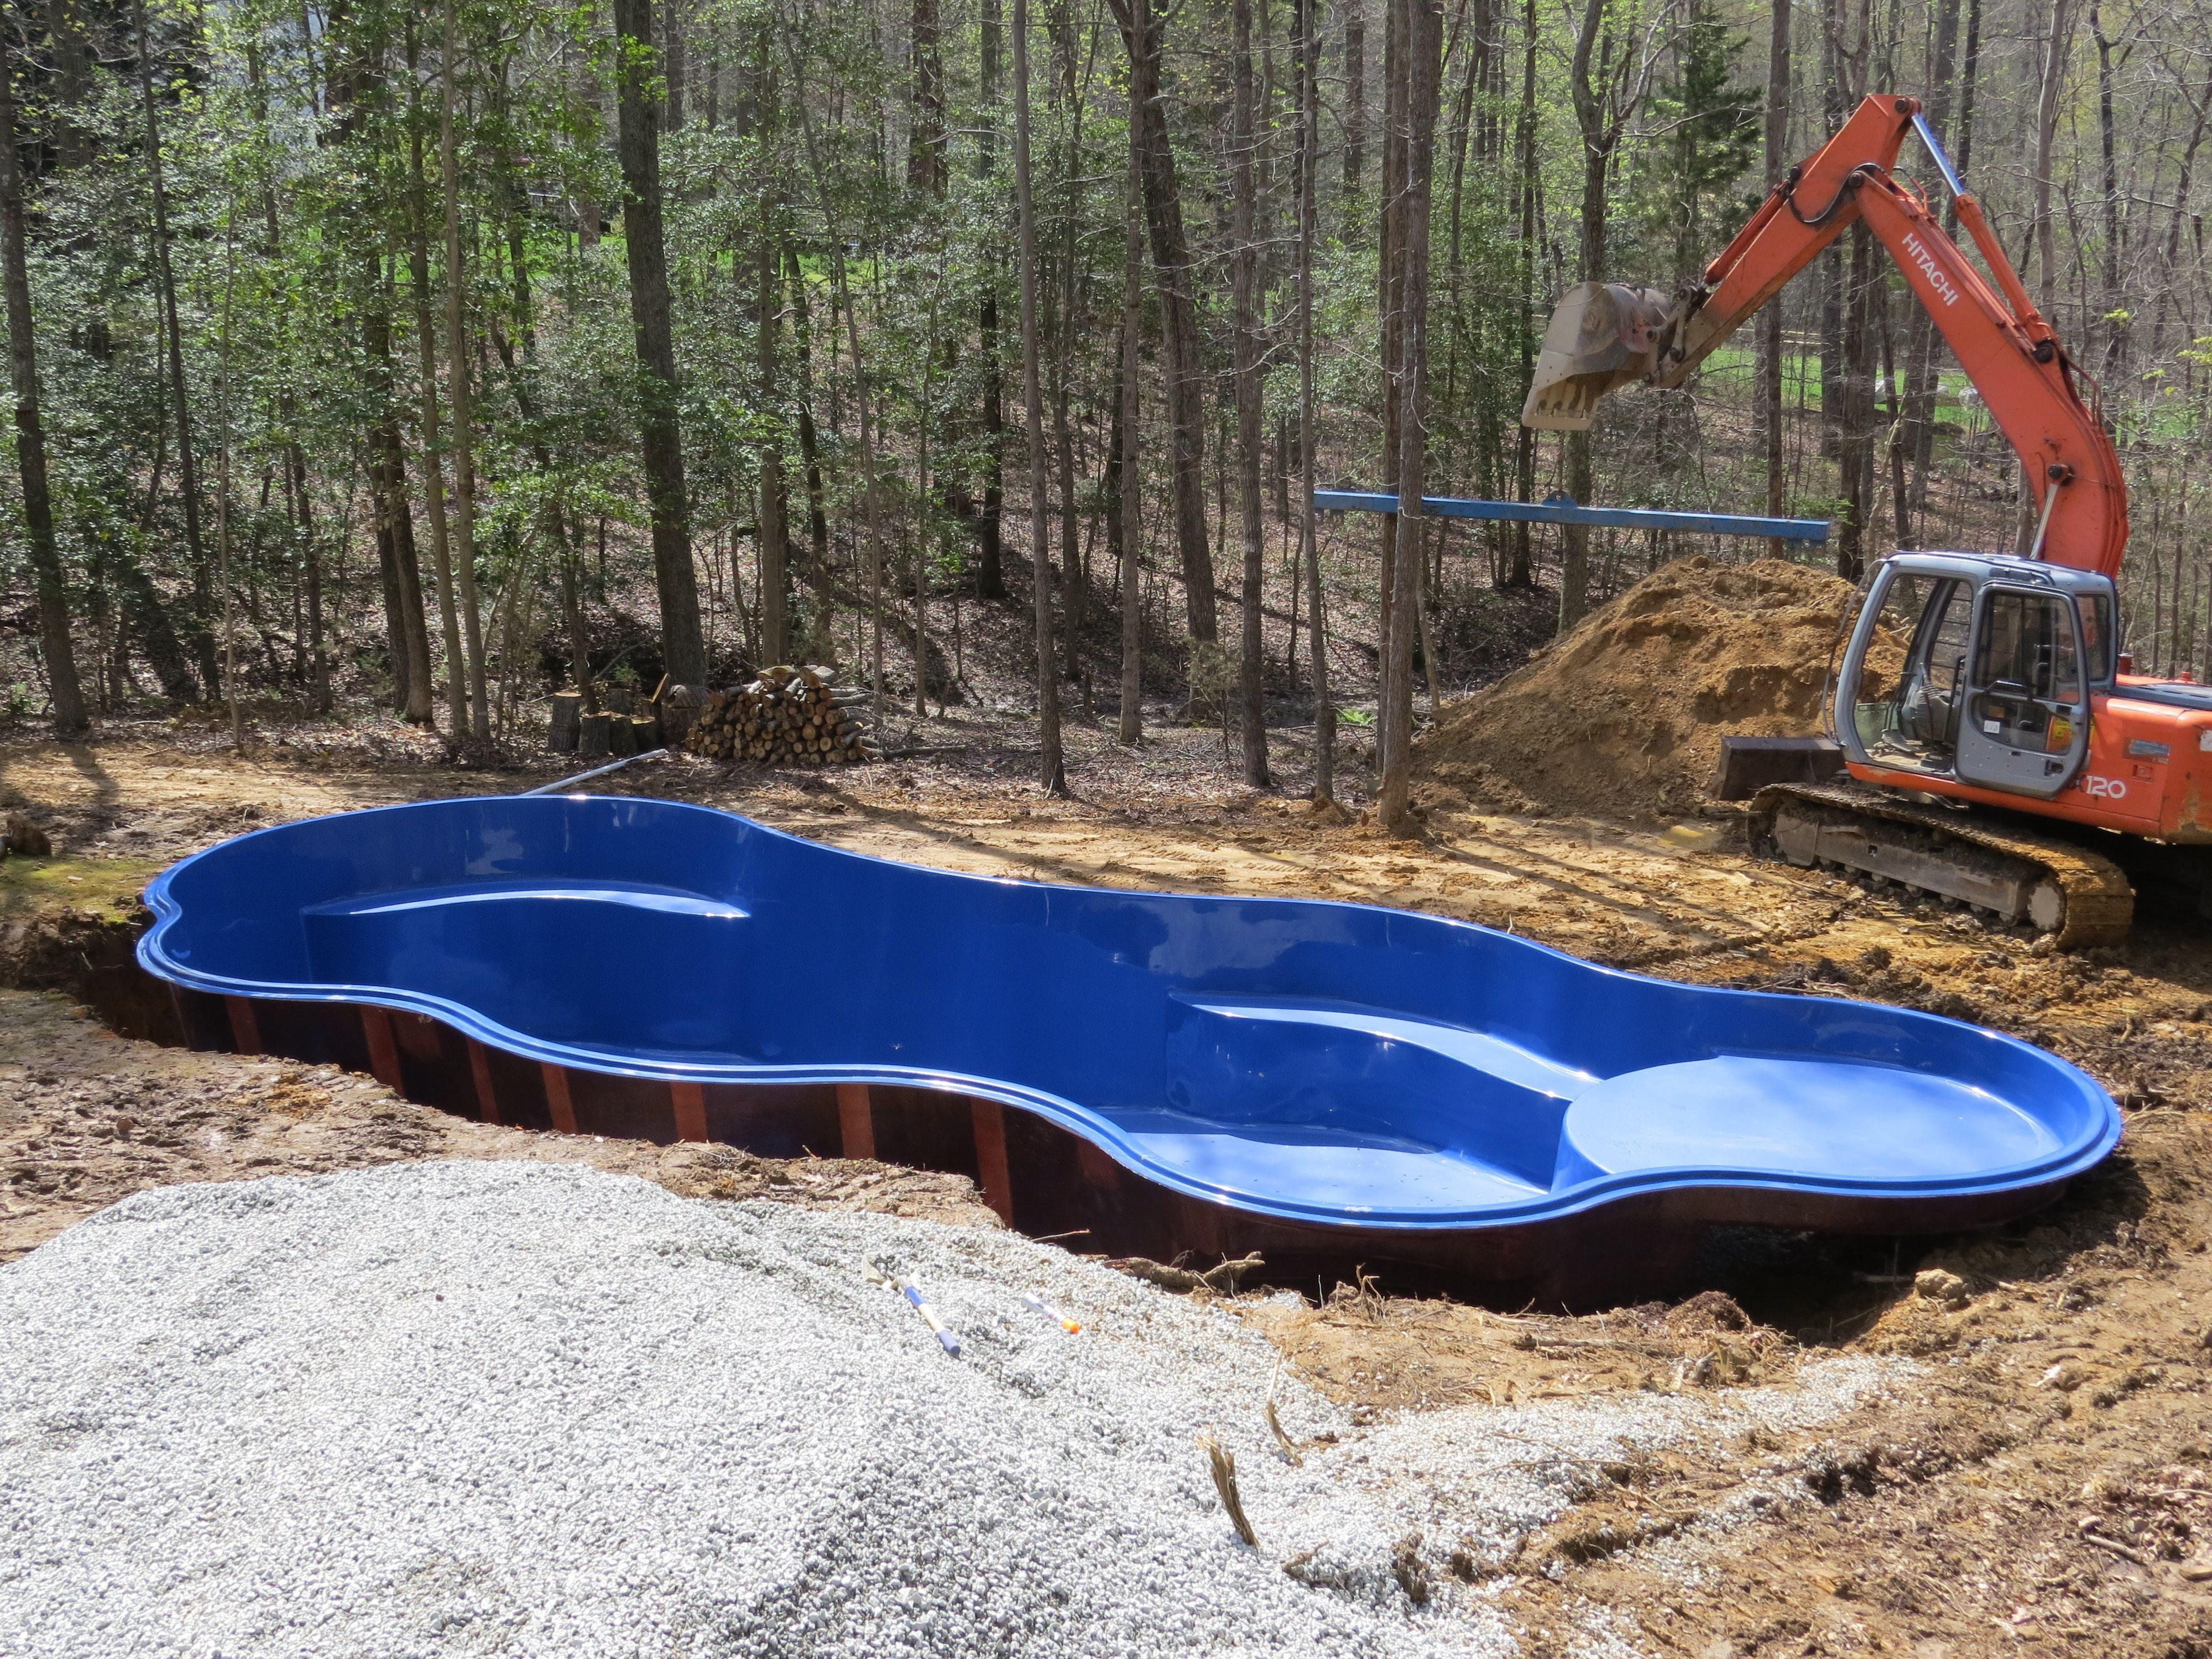 What Are The Best Fiberglass Pool Shapes In 2020 Inground Pool Designs Pool Shapes Fiberglass Pools